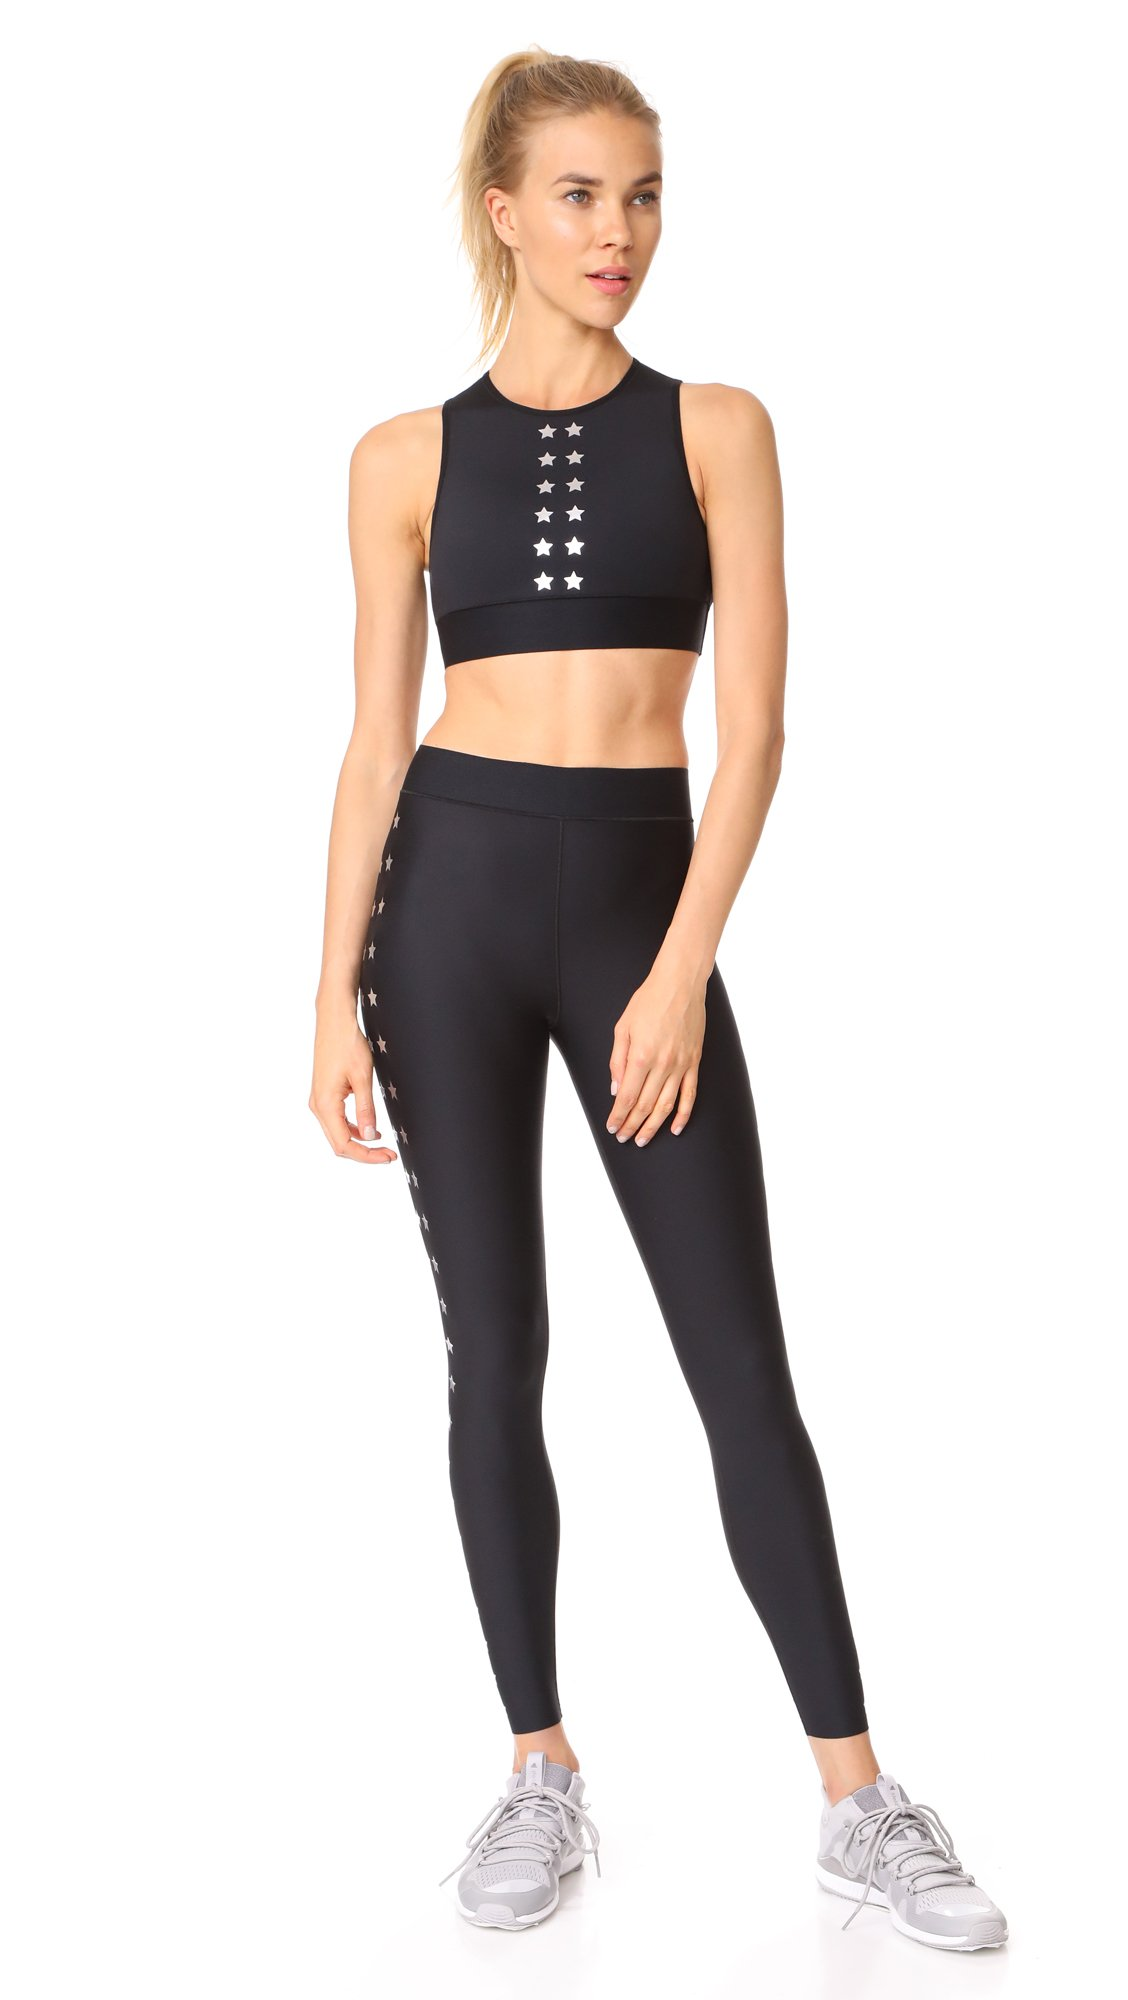 Ultracor Women's Ultra Matte Flash Knockout Leggings, Nero/Silver, X-Small by Ultracor (Image #4)